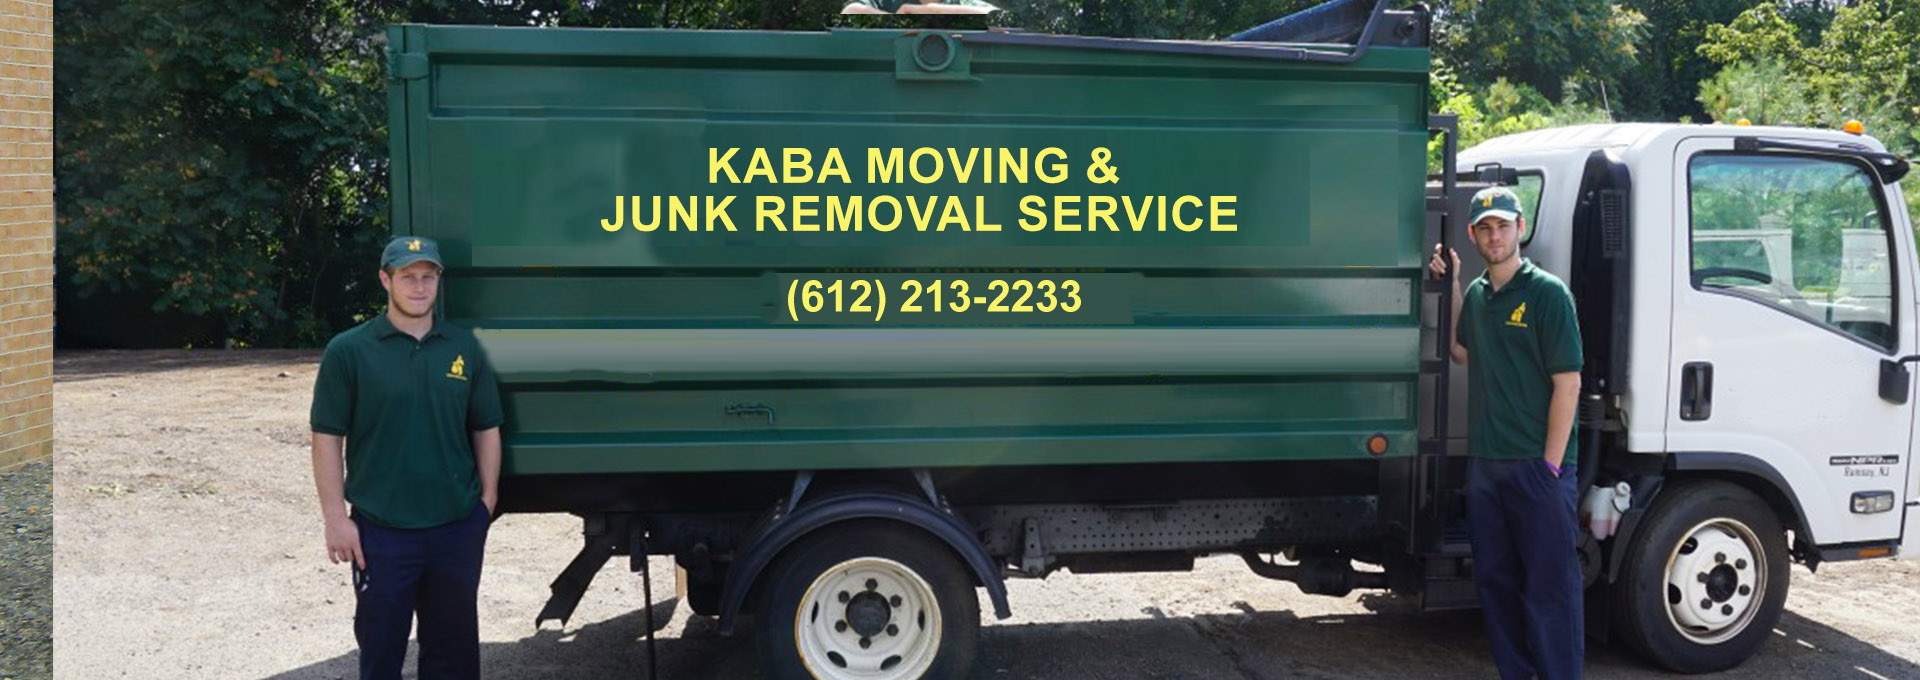 Kaba Moving and Junk Removal Service